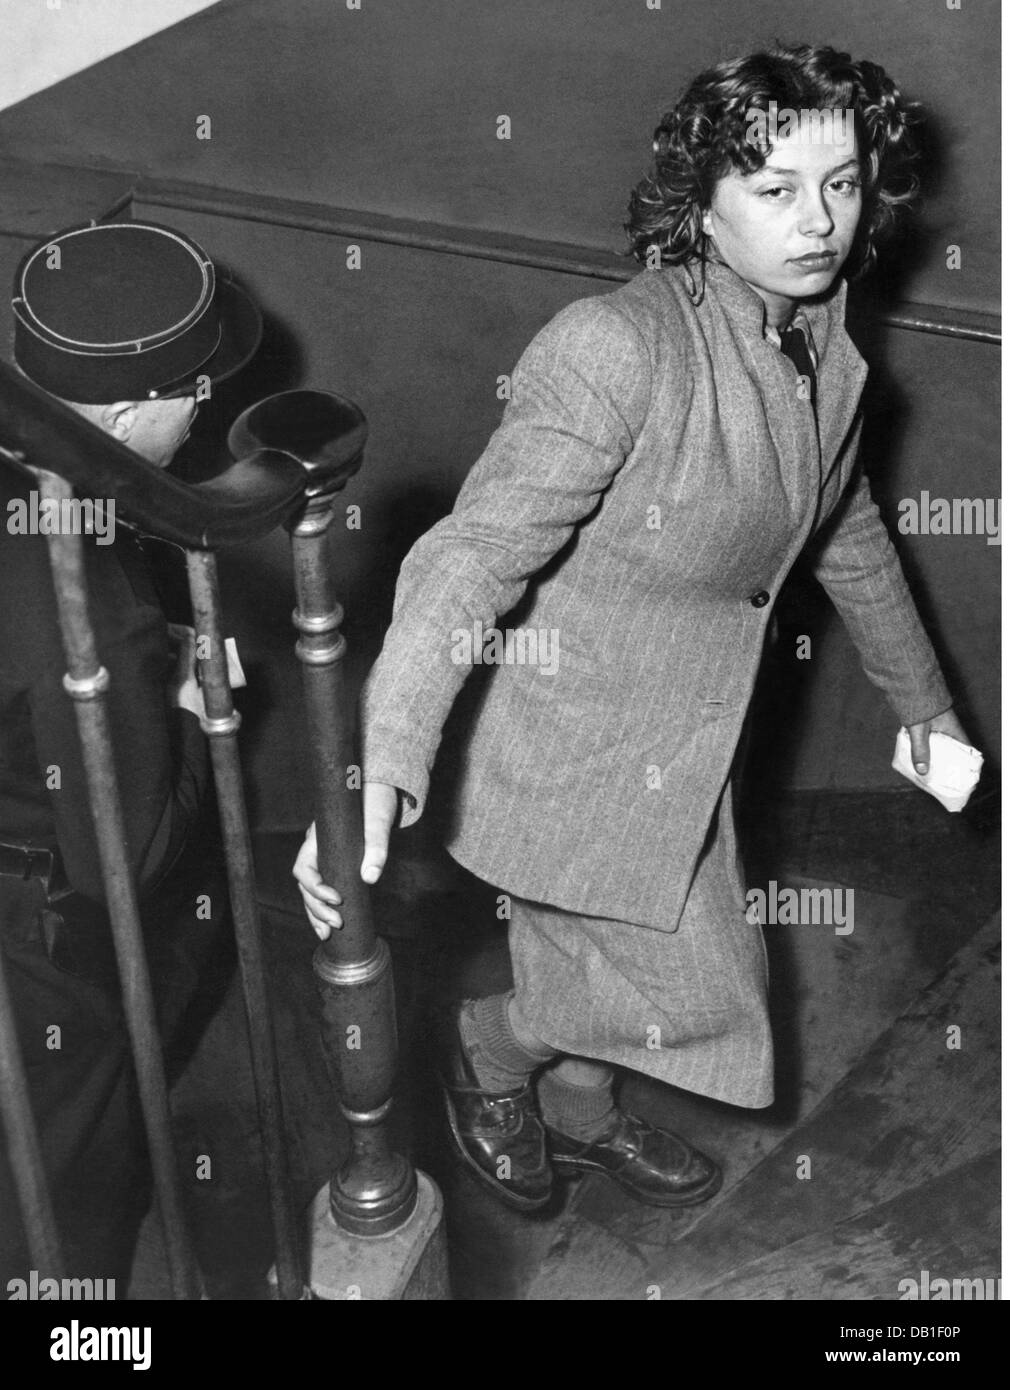 justice, serious crime, homicide, eighteen-year-old Huguette Joly at the police office after the murder of her companion, - Stock Image